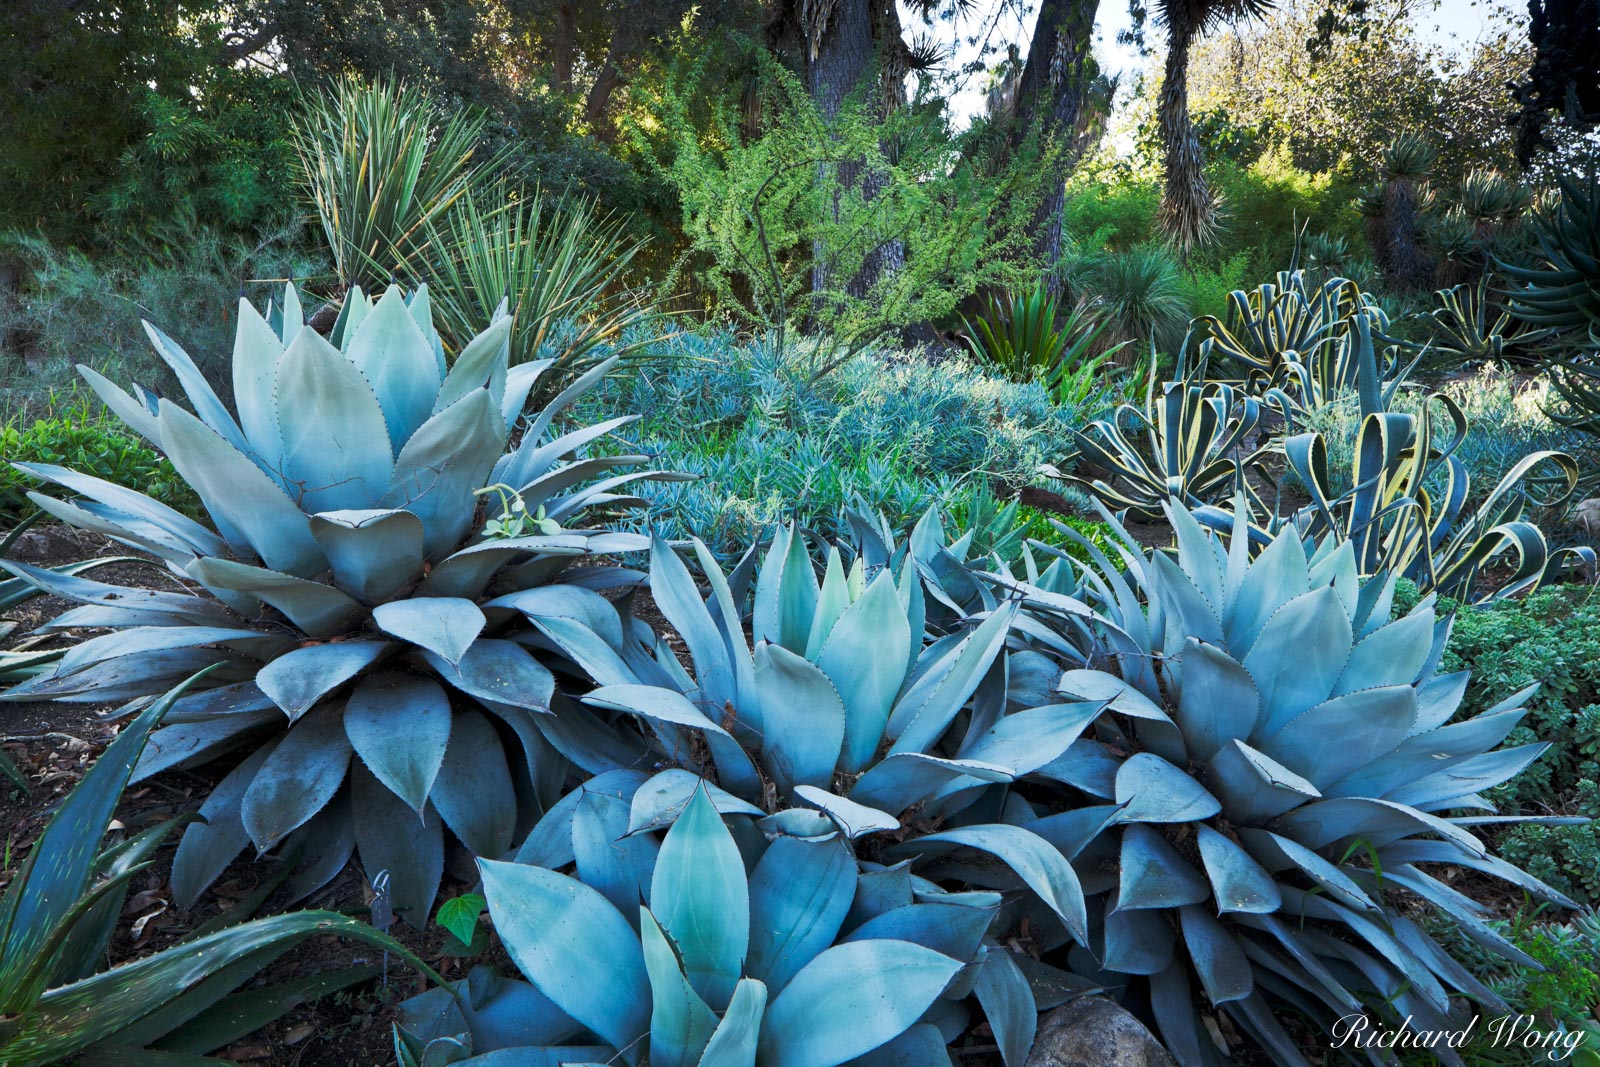 Agave Plants in Desert Garden at The Huntington, San Marino, California, photo, photo